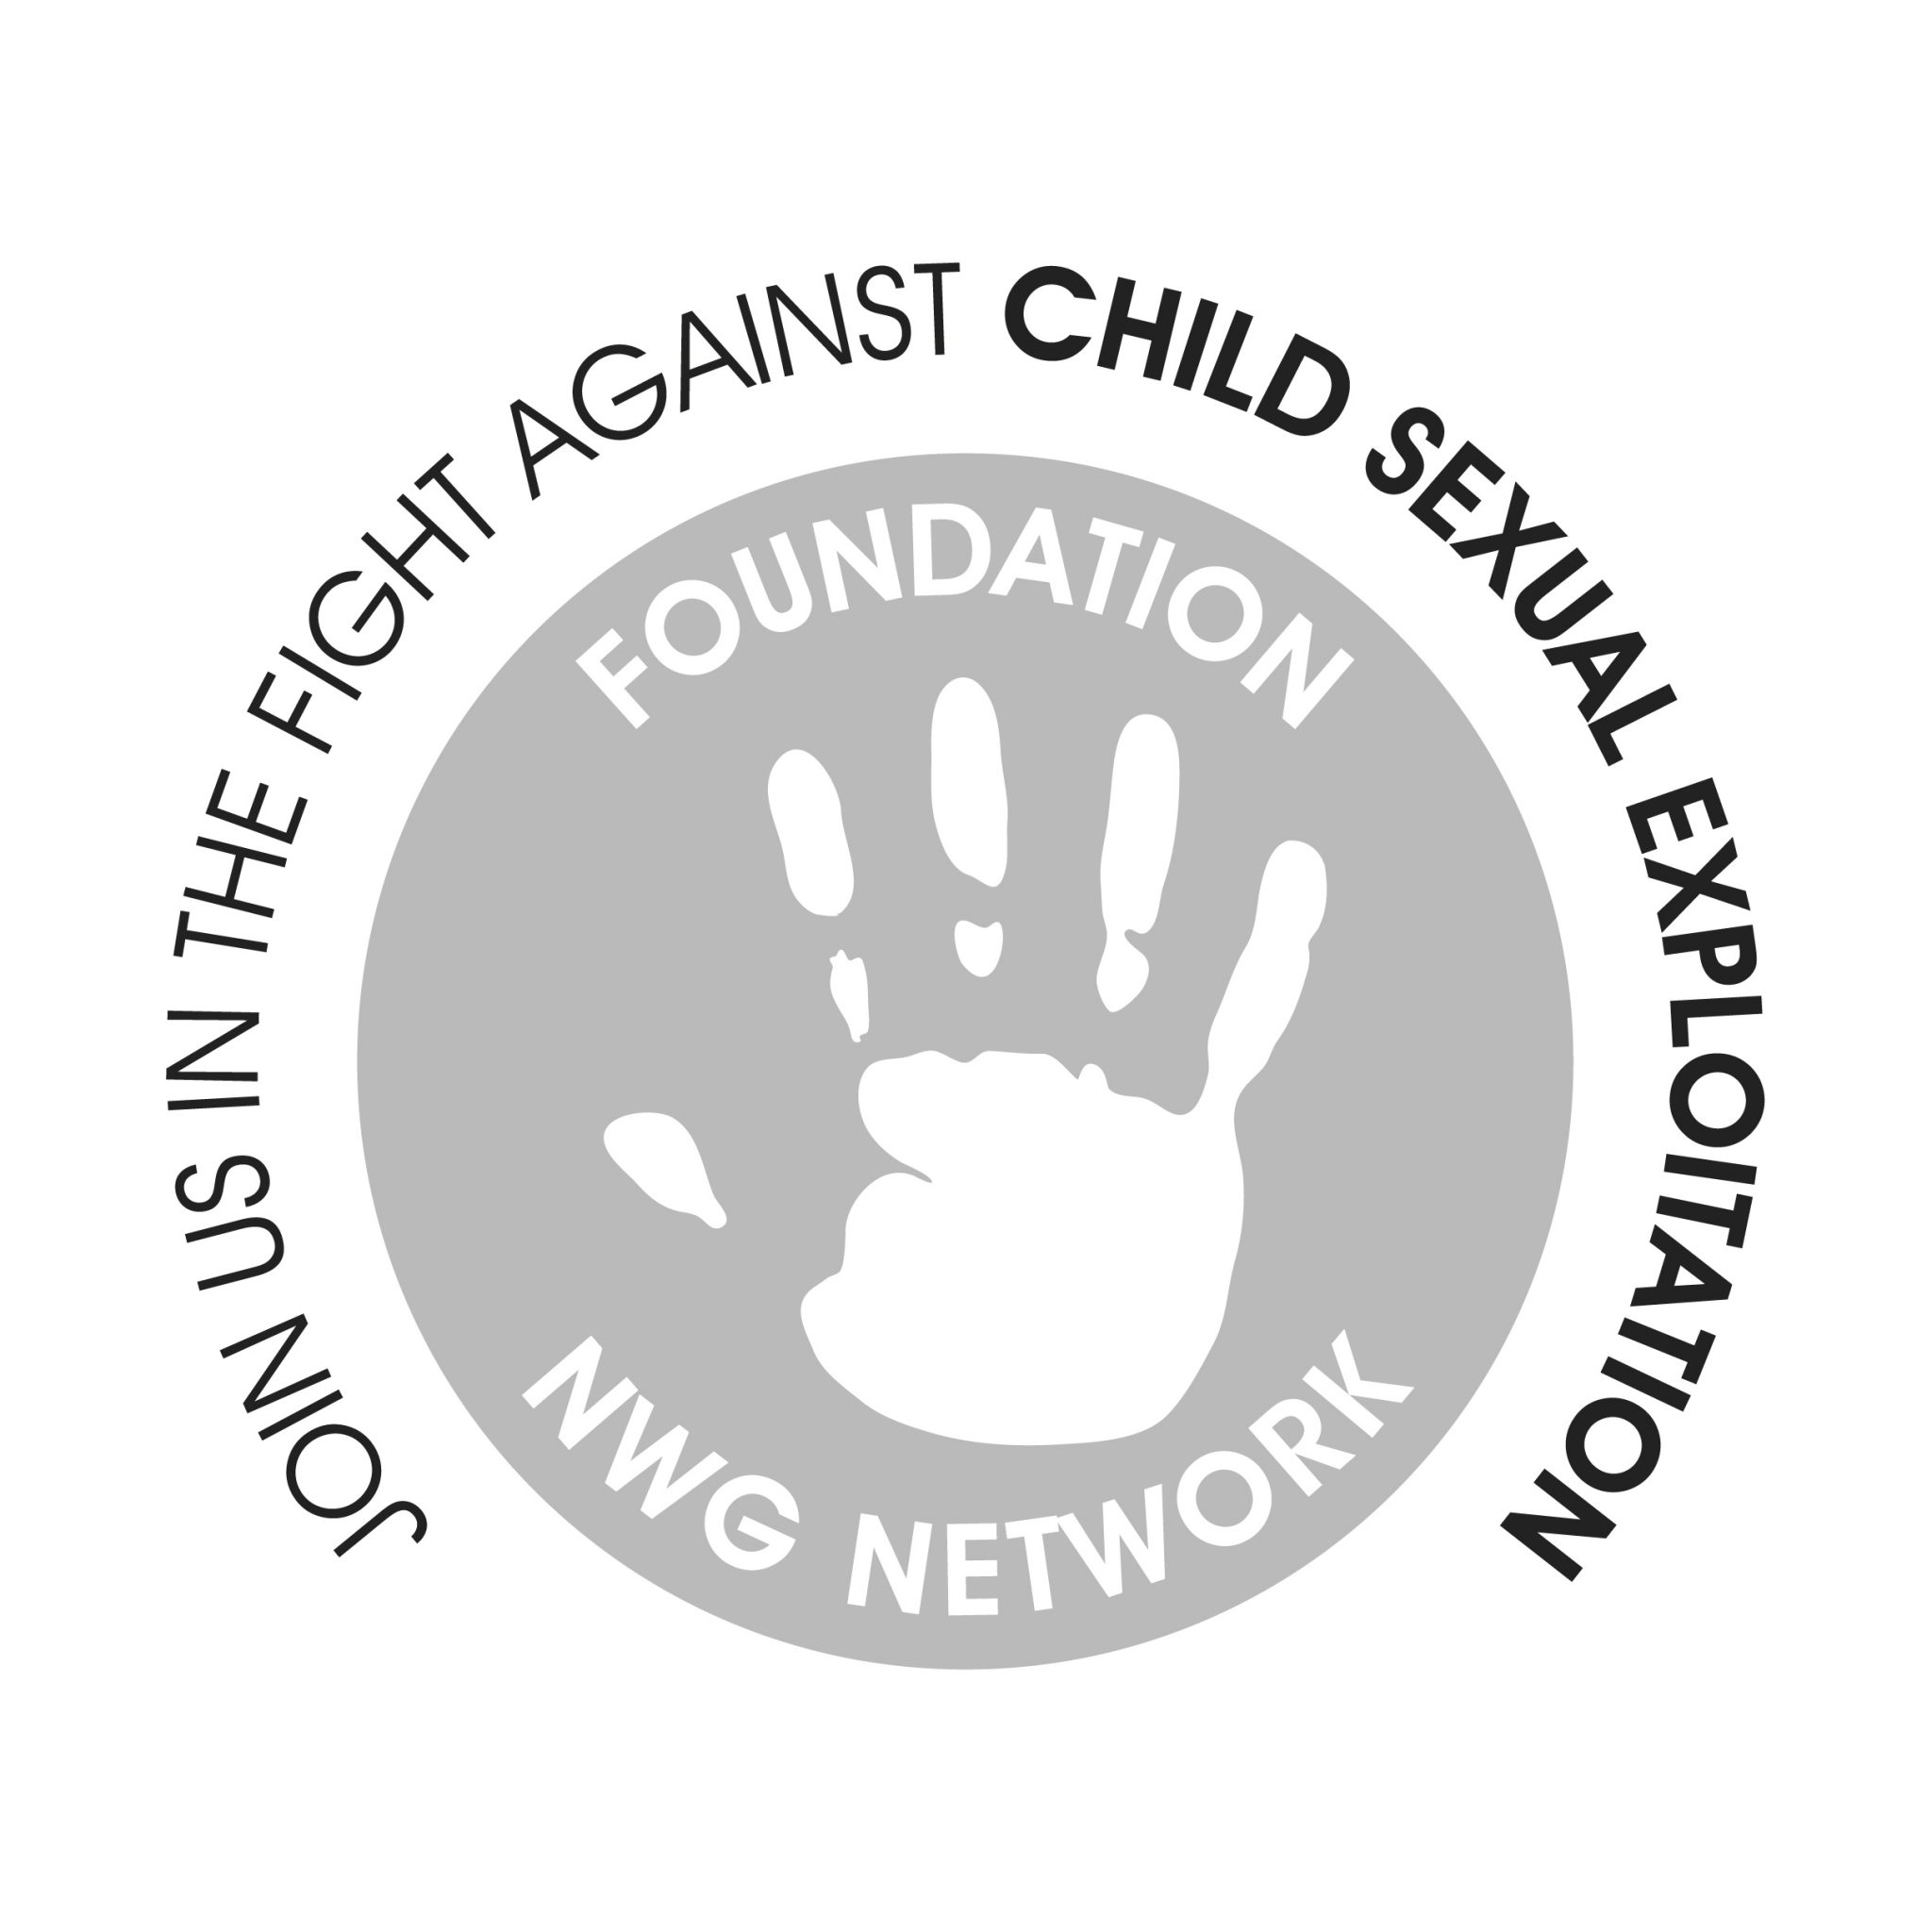 NWG Foundation